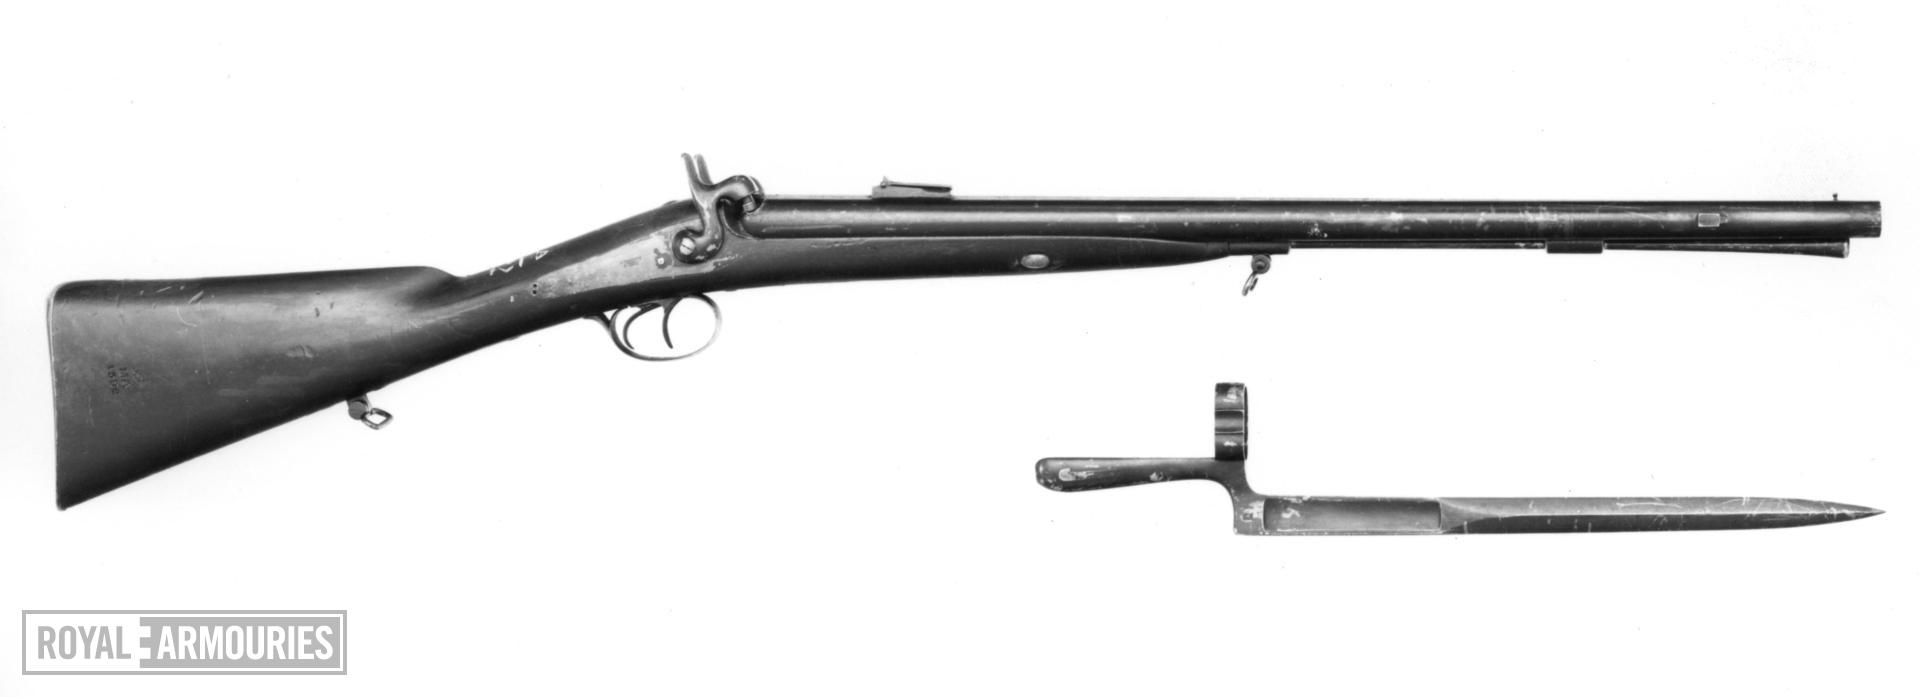 Percussion muzzle-loading double-barrelled carbine - Chasseur's Model 1858